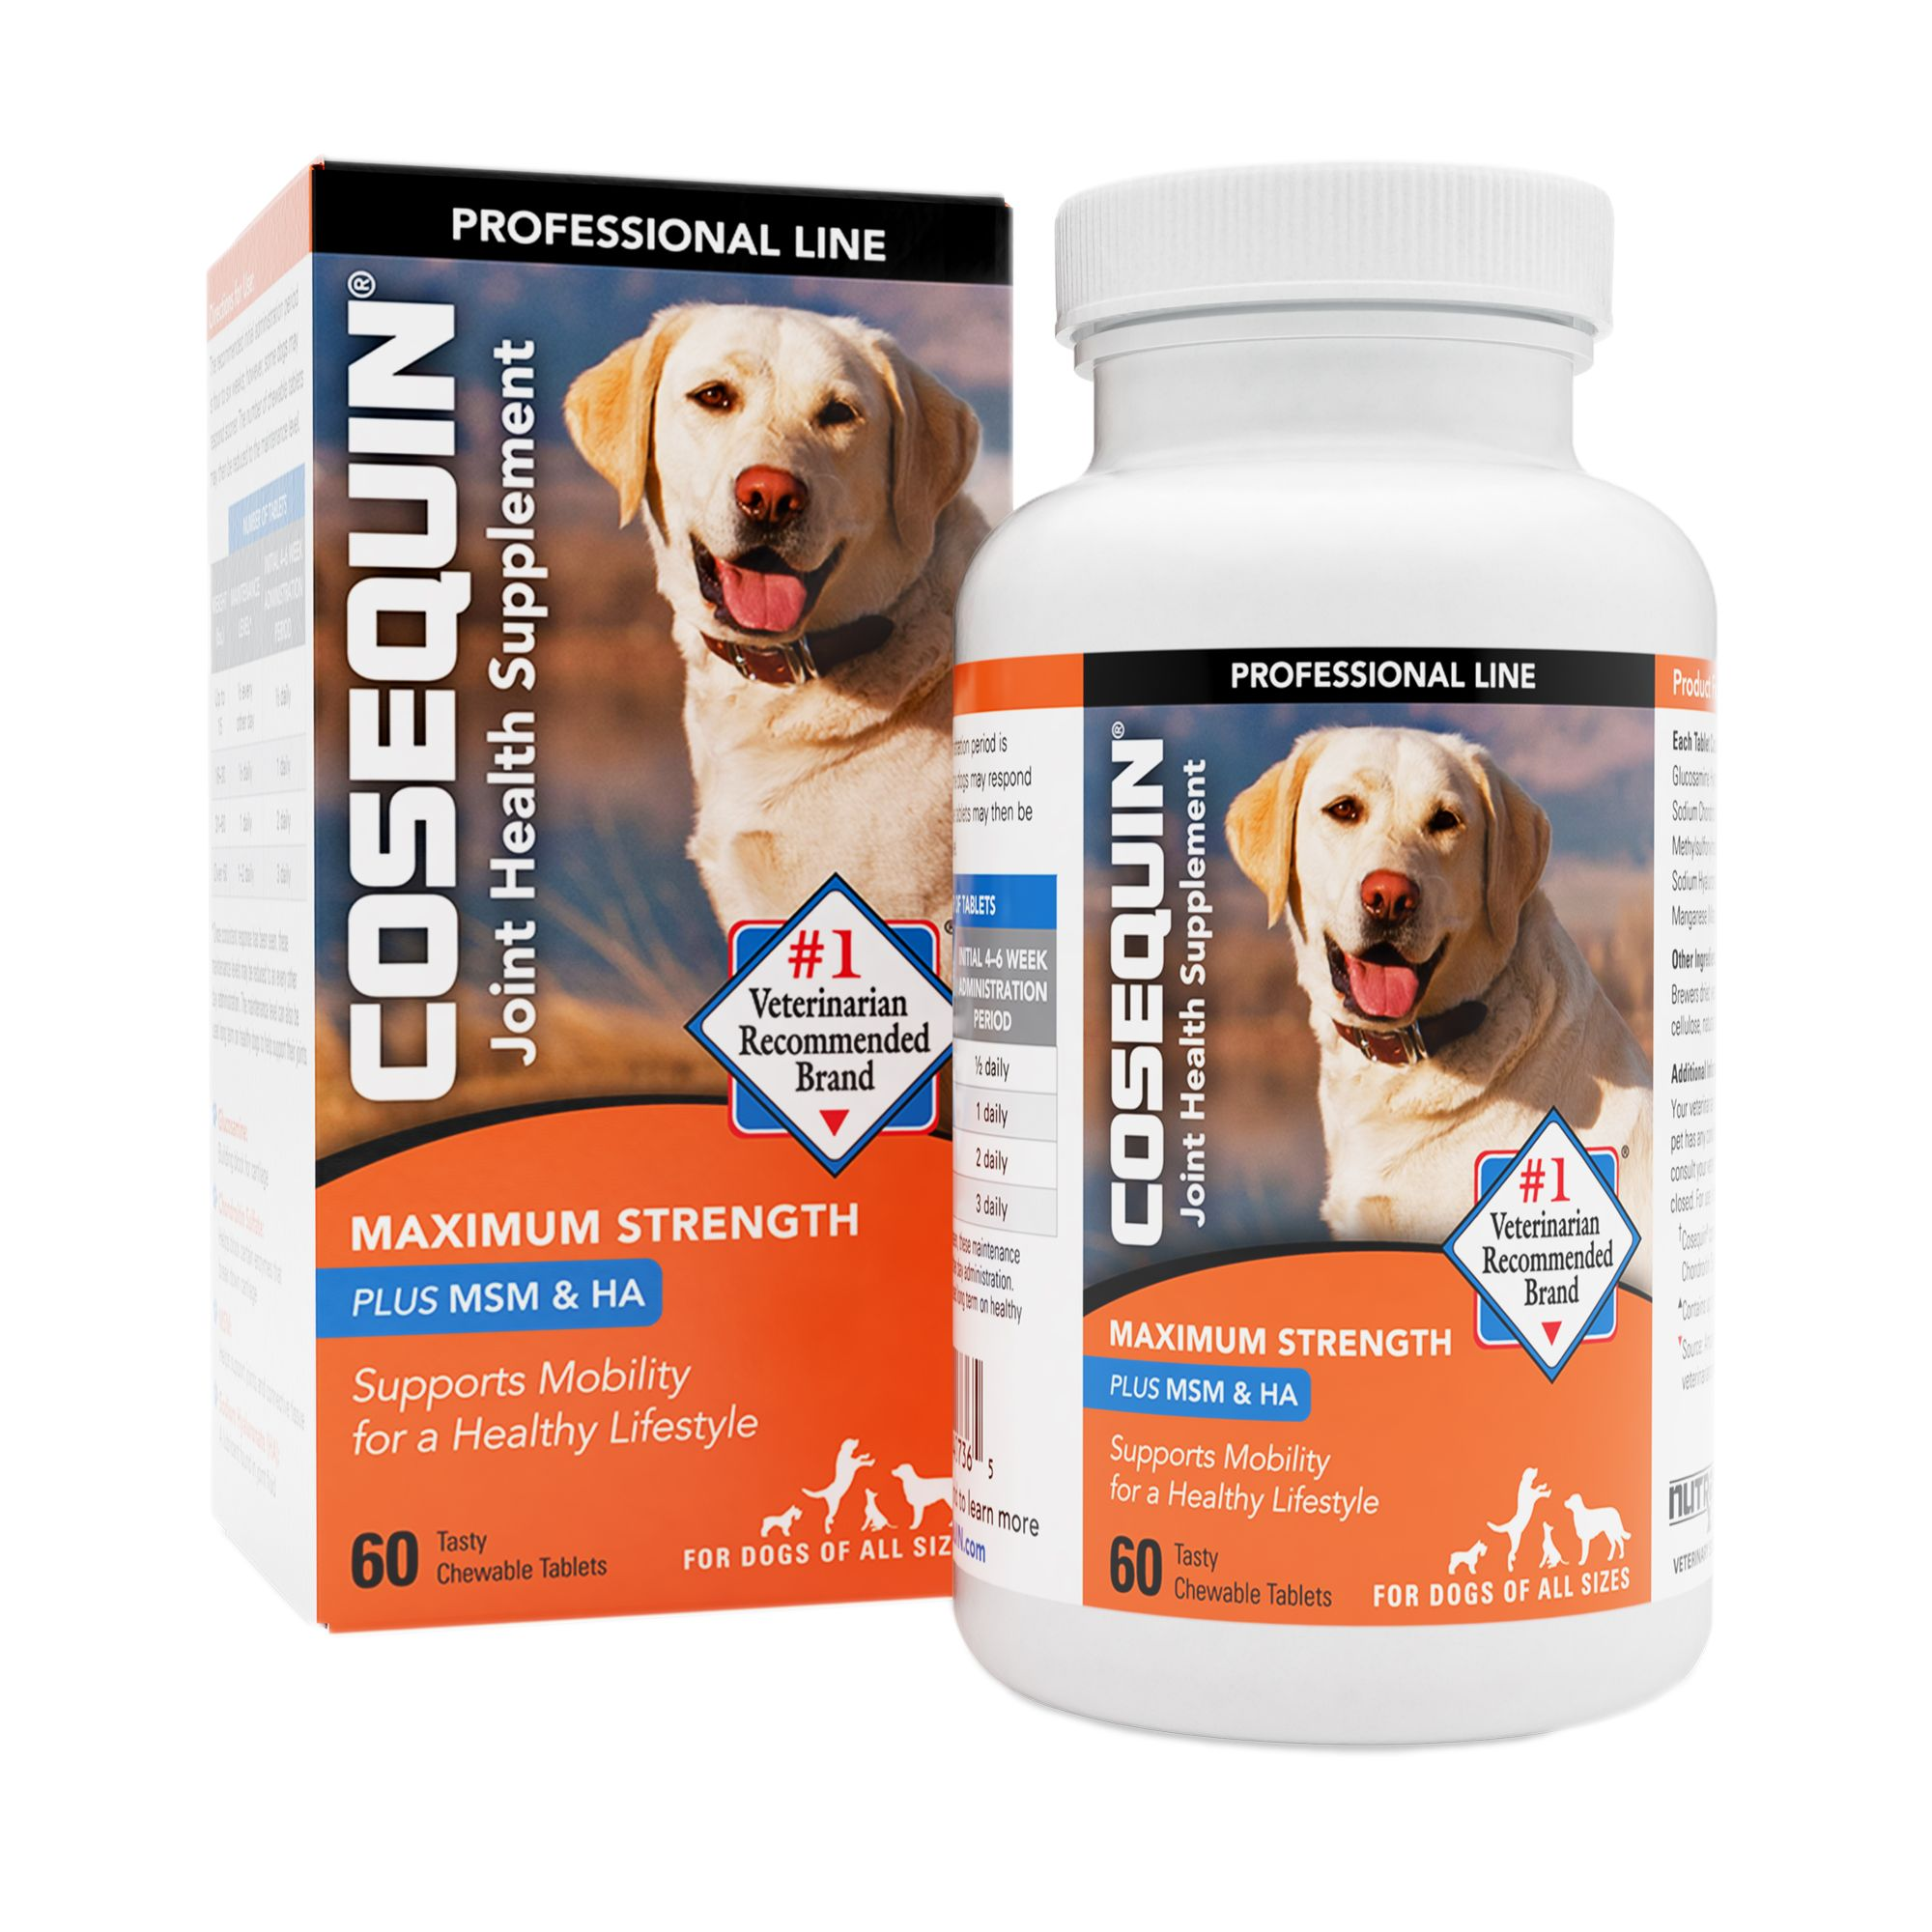 Cosequin Nutramax Professional Joint Health Dog Supplement Size 60 Count Nutramax Laboratories